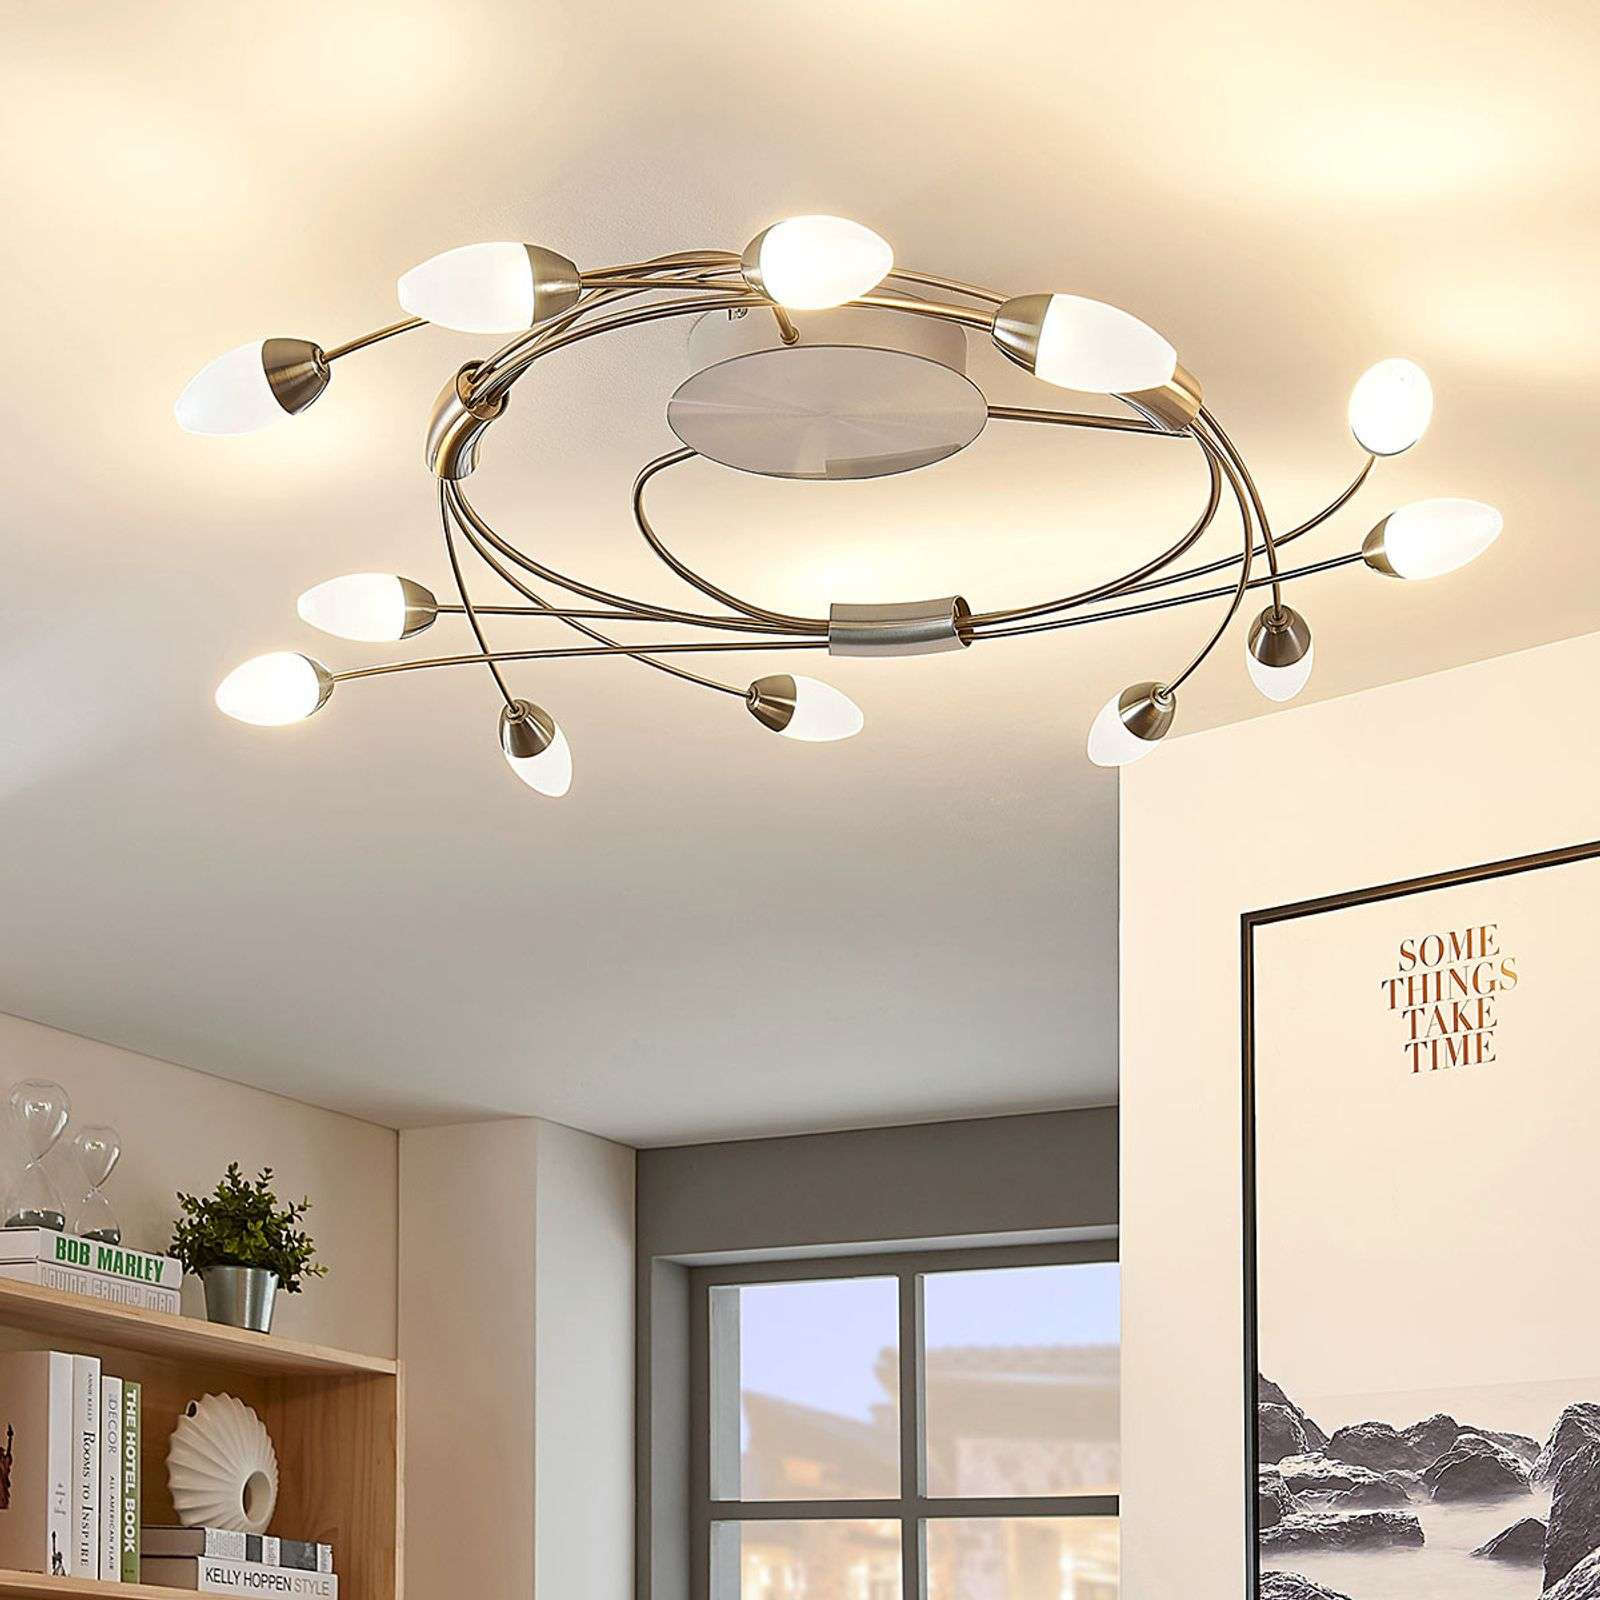 Plafonnier LED Deyan, dimmable, 12 lampes